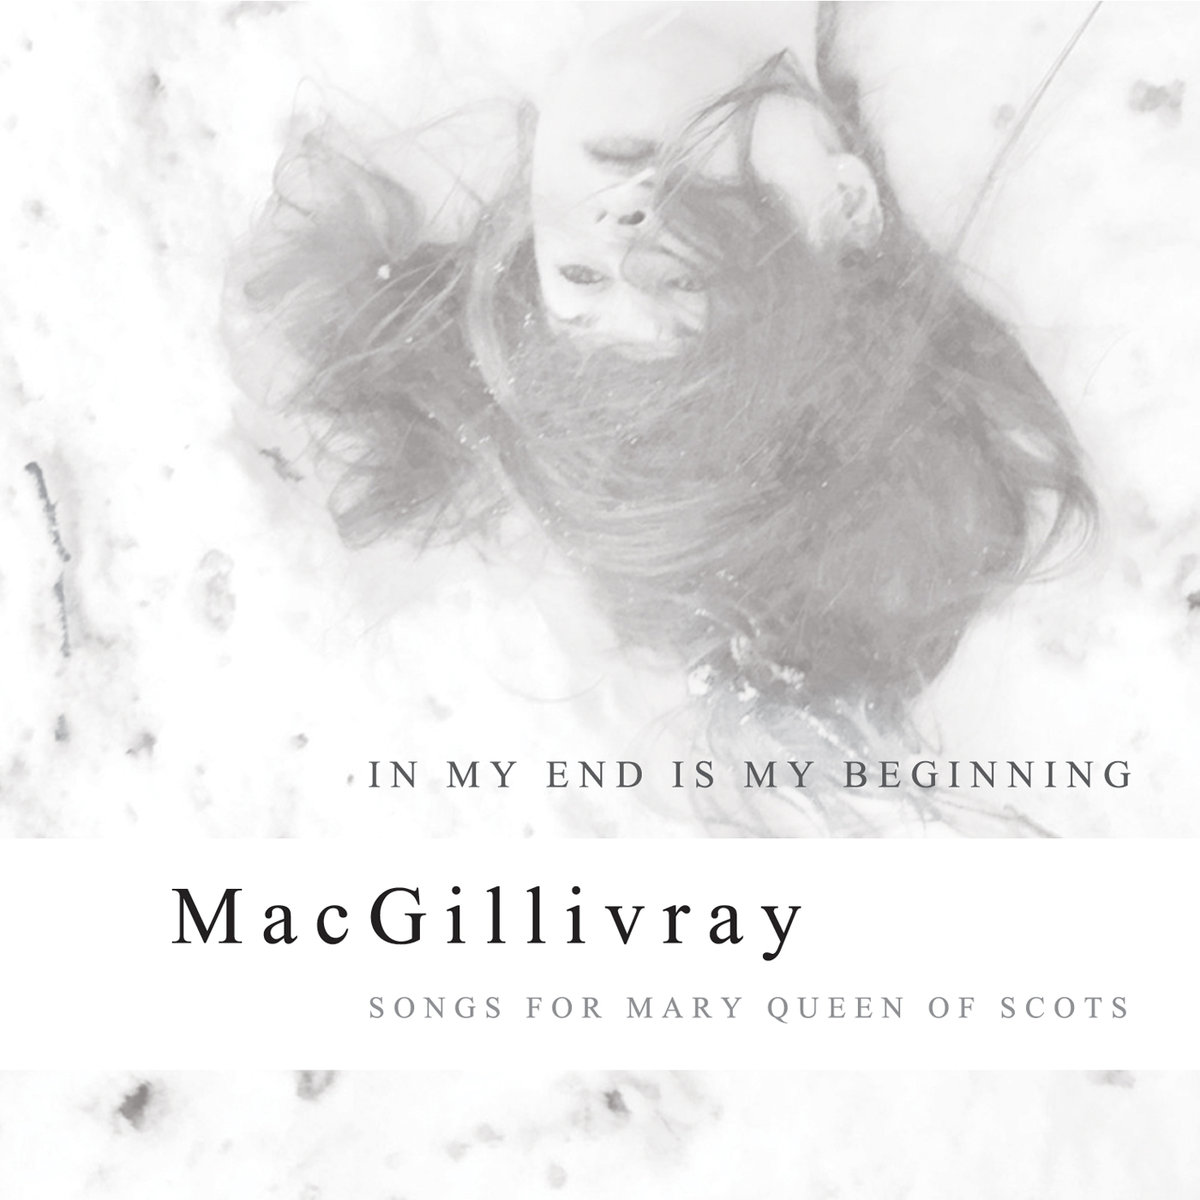 MACGILLIVRAY - SONGS FOR MARY QUEEN OF SCOTS: Production / Mixing